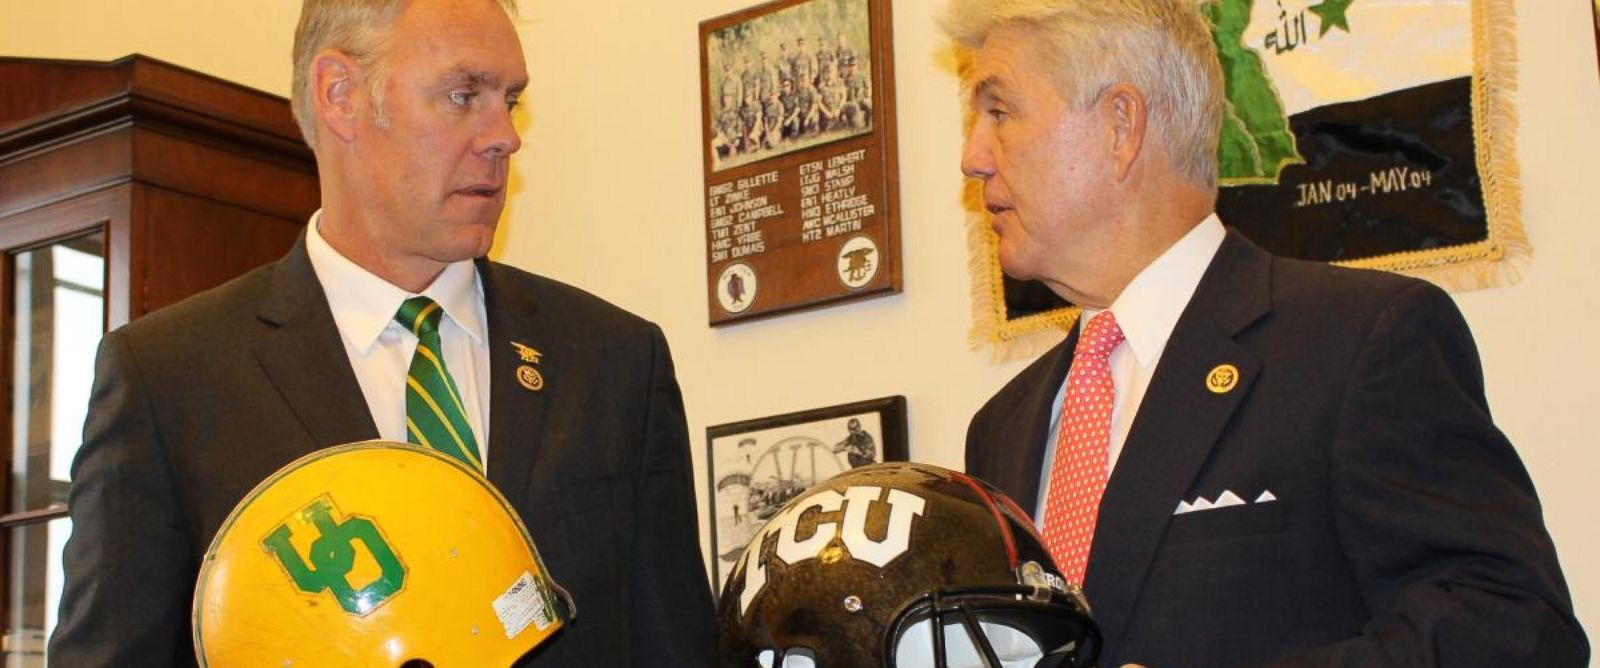 PHOTO: Rep. Roger Williams (R-TX) and Rep. Ryan Zinke (R-MT) make their friendly wagers over the outcome of the Jan. 2 Alamo Bowl.